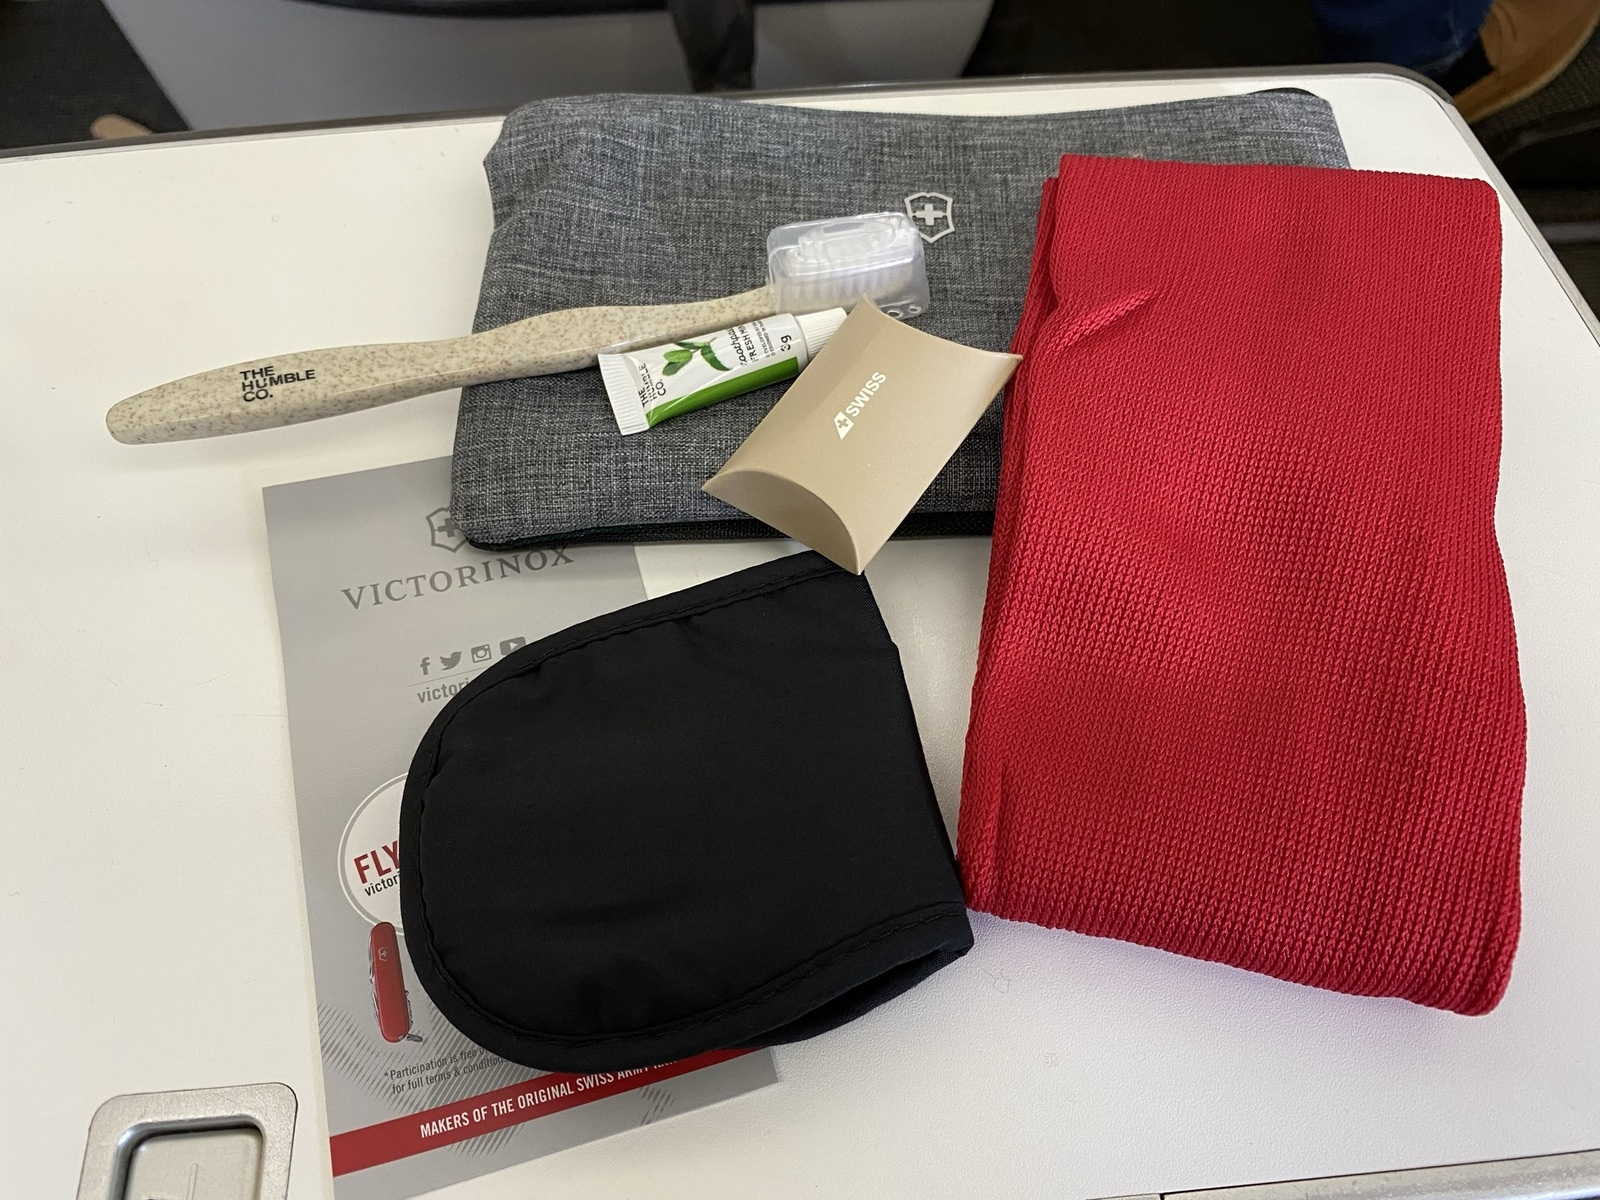 SWISS business class amenity kit contents